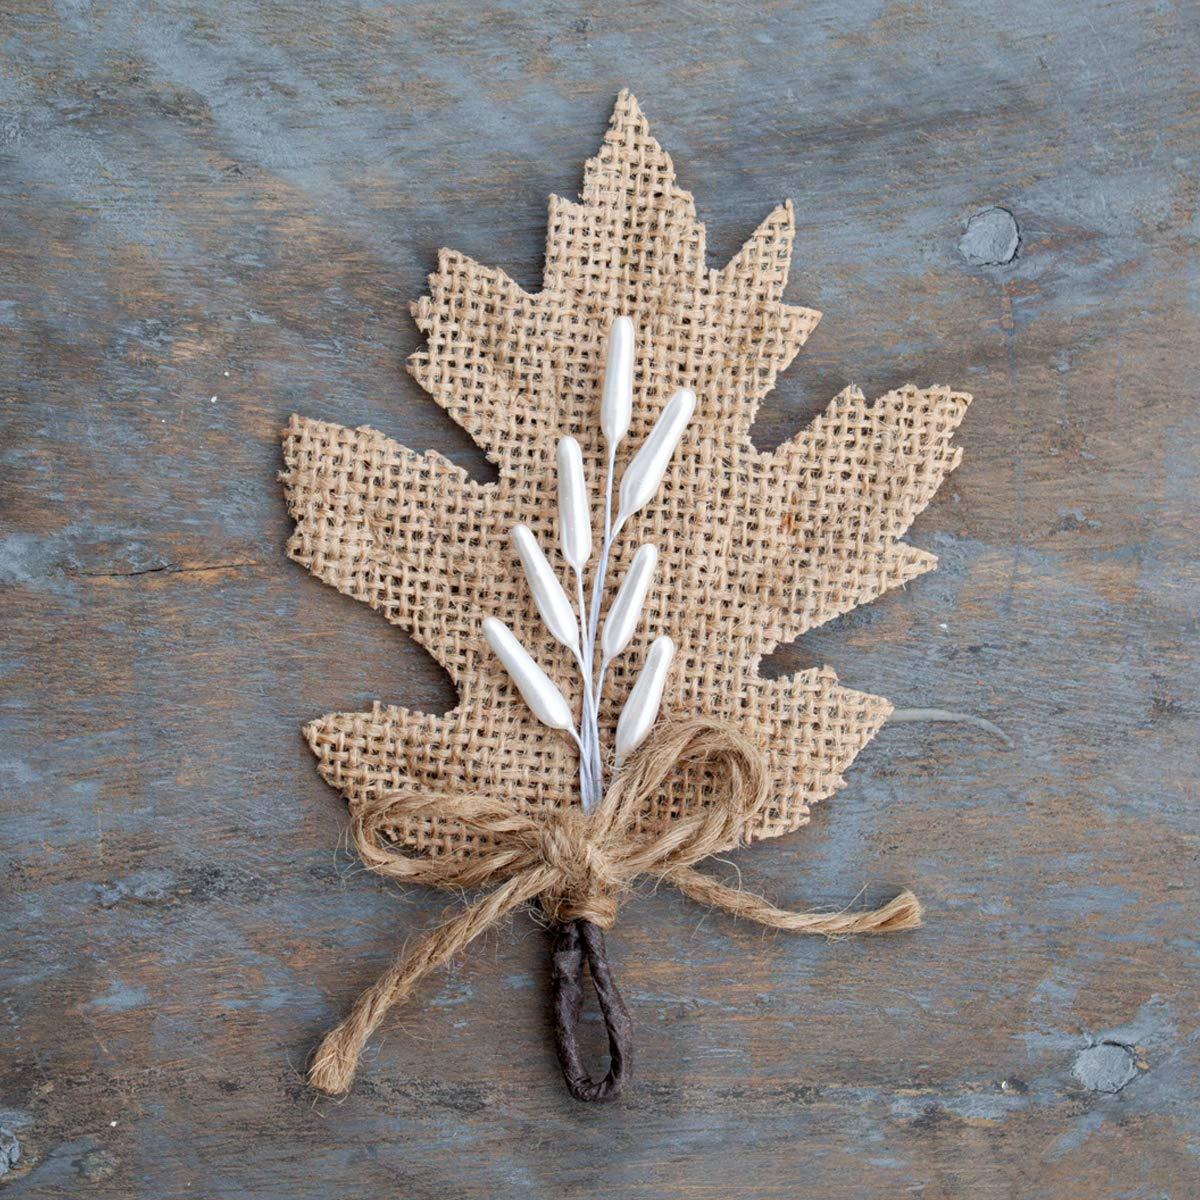 4-pcs-Rustic-Chic-Burlap-Boutonnieres-with-Beads-Groom-Best-Man-Wedding-Flowers-Accessories-Prom-by-BalsaCircle